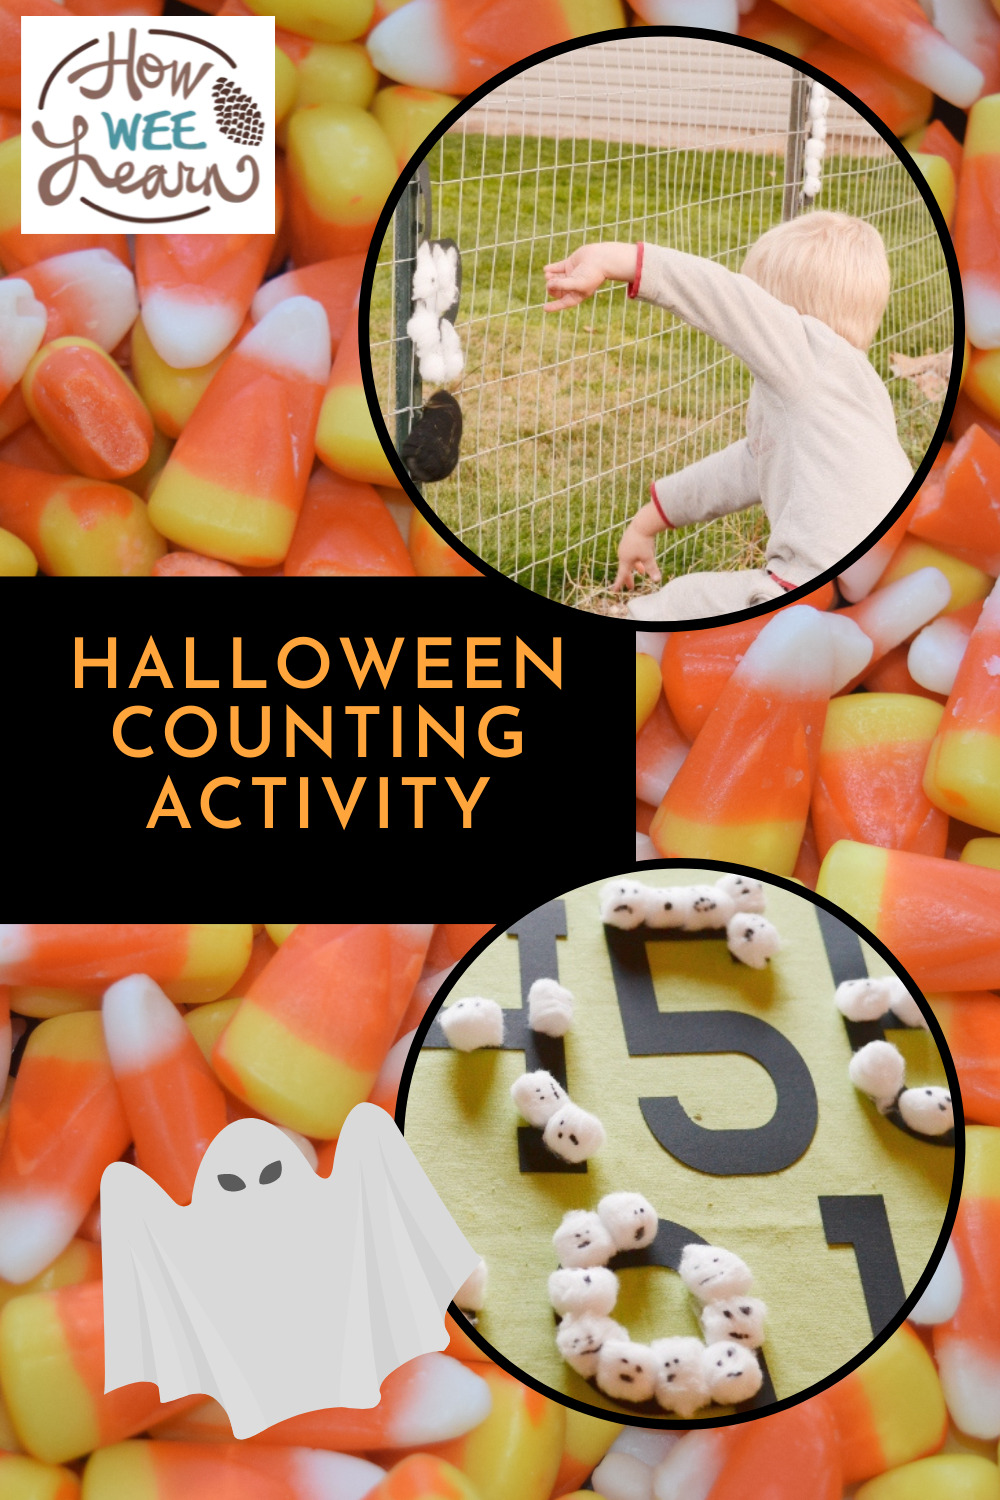 This Halloween counting activity is such a fun learning activity, kids won't even realize they are learning how to count!